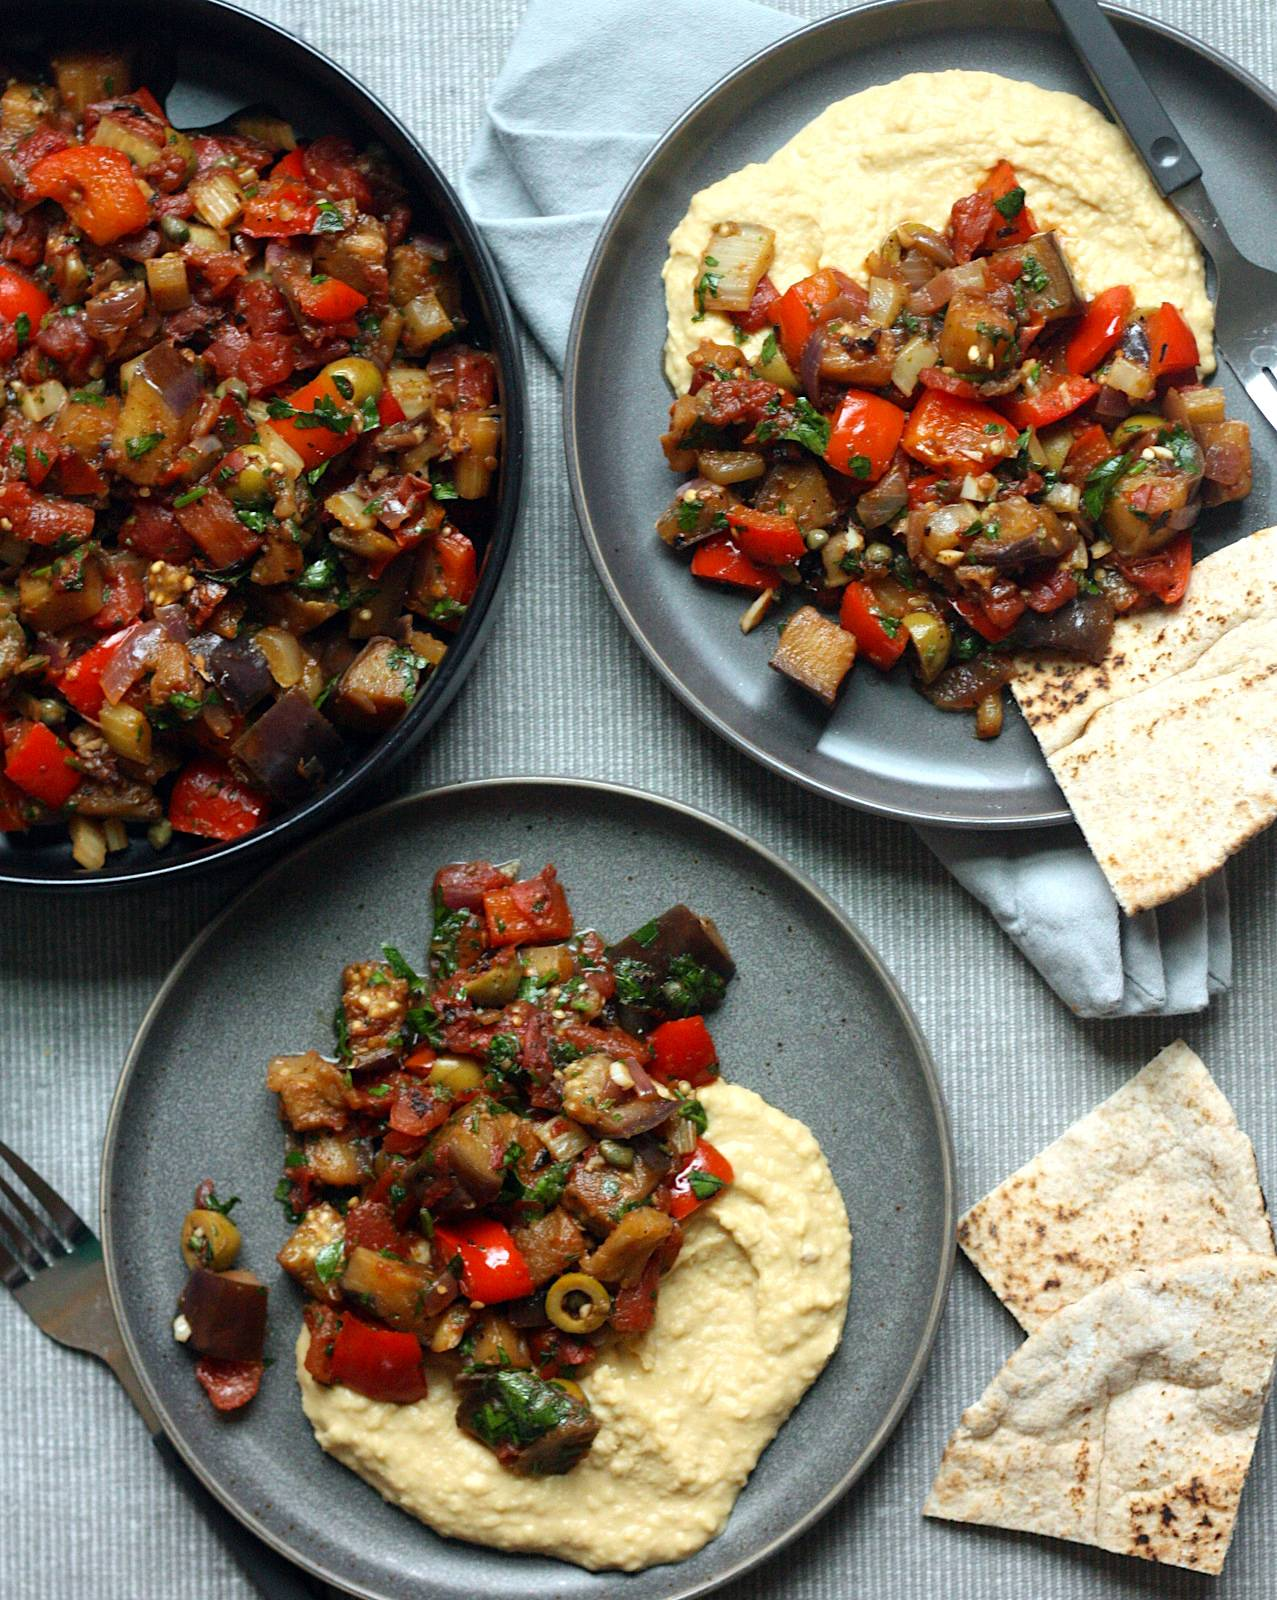 Eggplant Caponata with Roasted Garlic Hummus